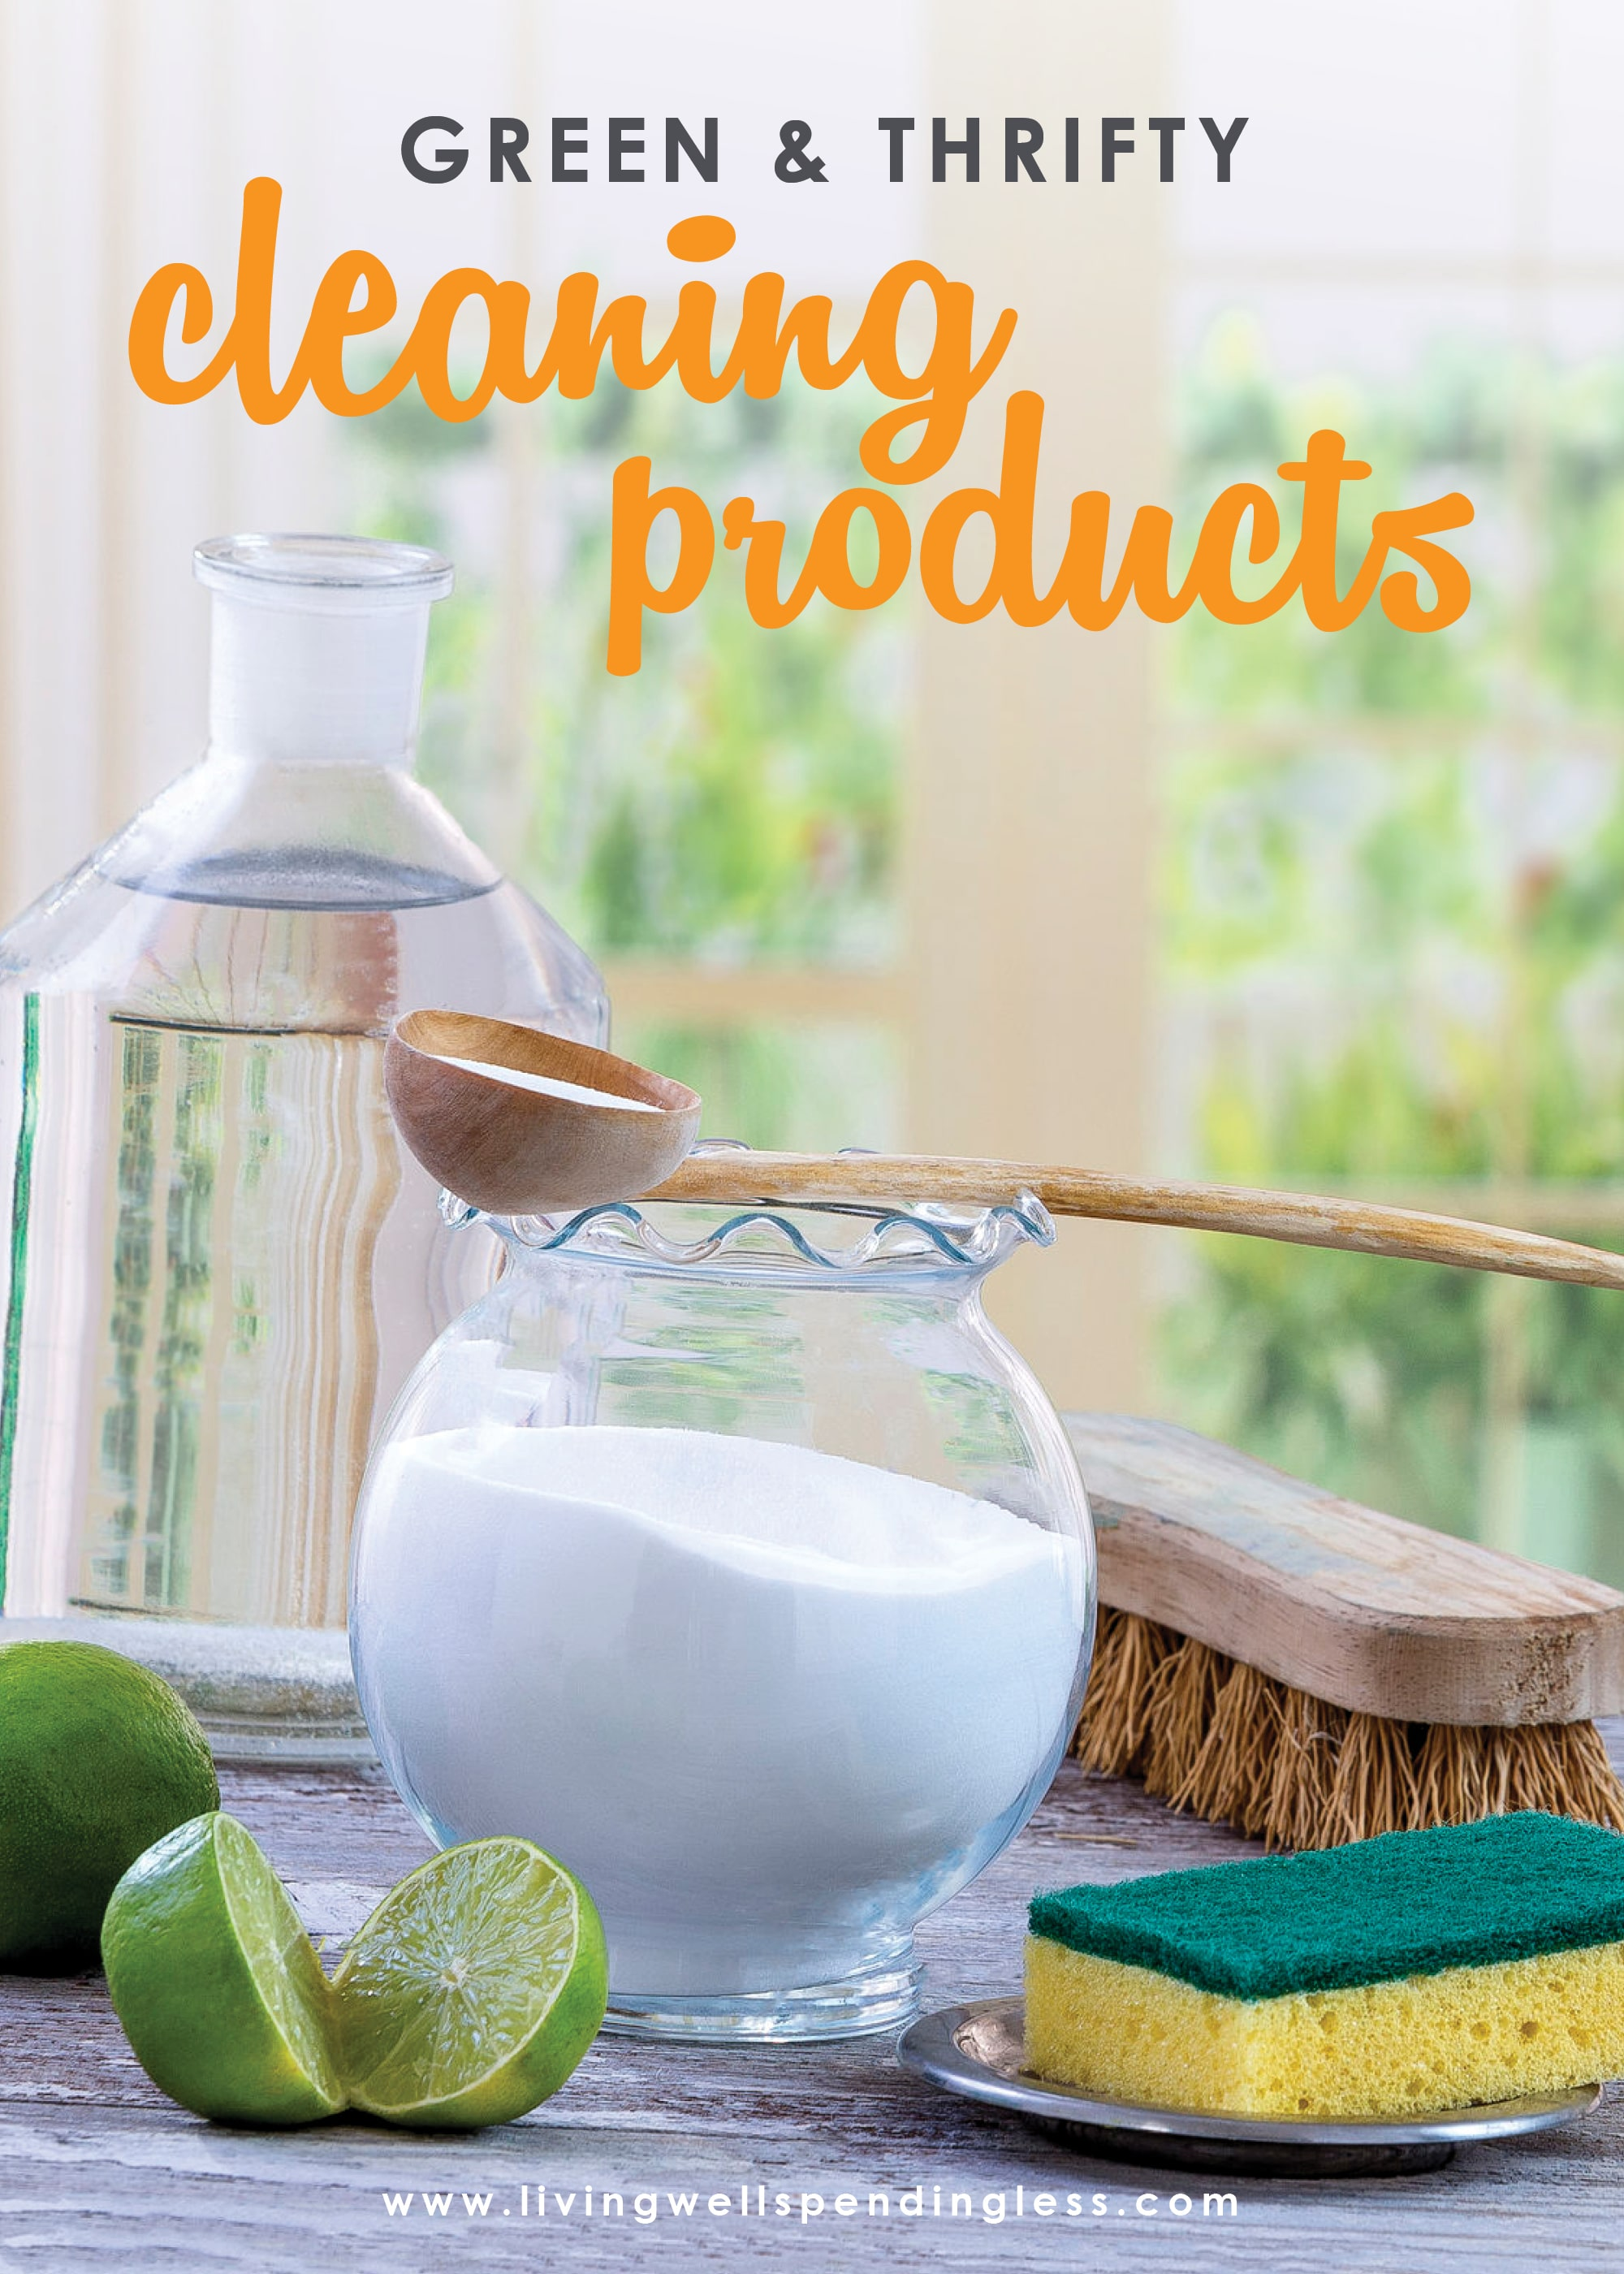 Did you know just 10 pantry staples combined 10 different ways can create 10 awesome homemade cleaners that will clean almost every surface in your house? Better yet? You probably even have most of them already on hand! There's even a cute cheat sheet to print out for your laundry room!